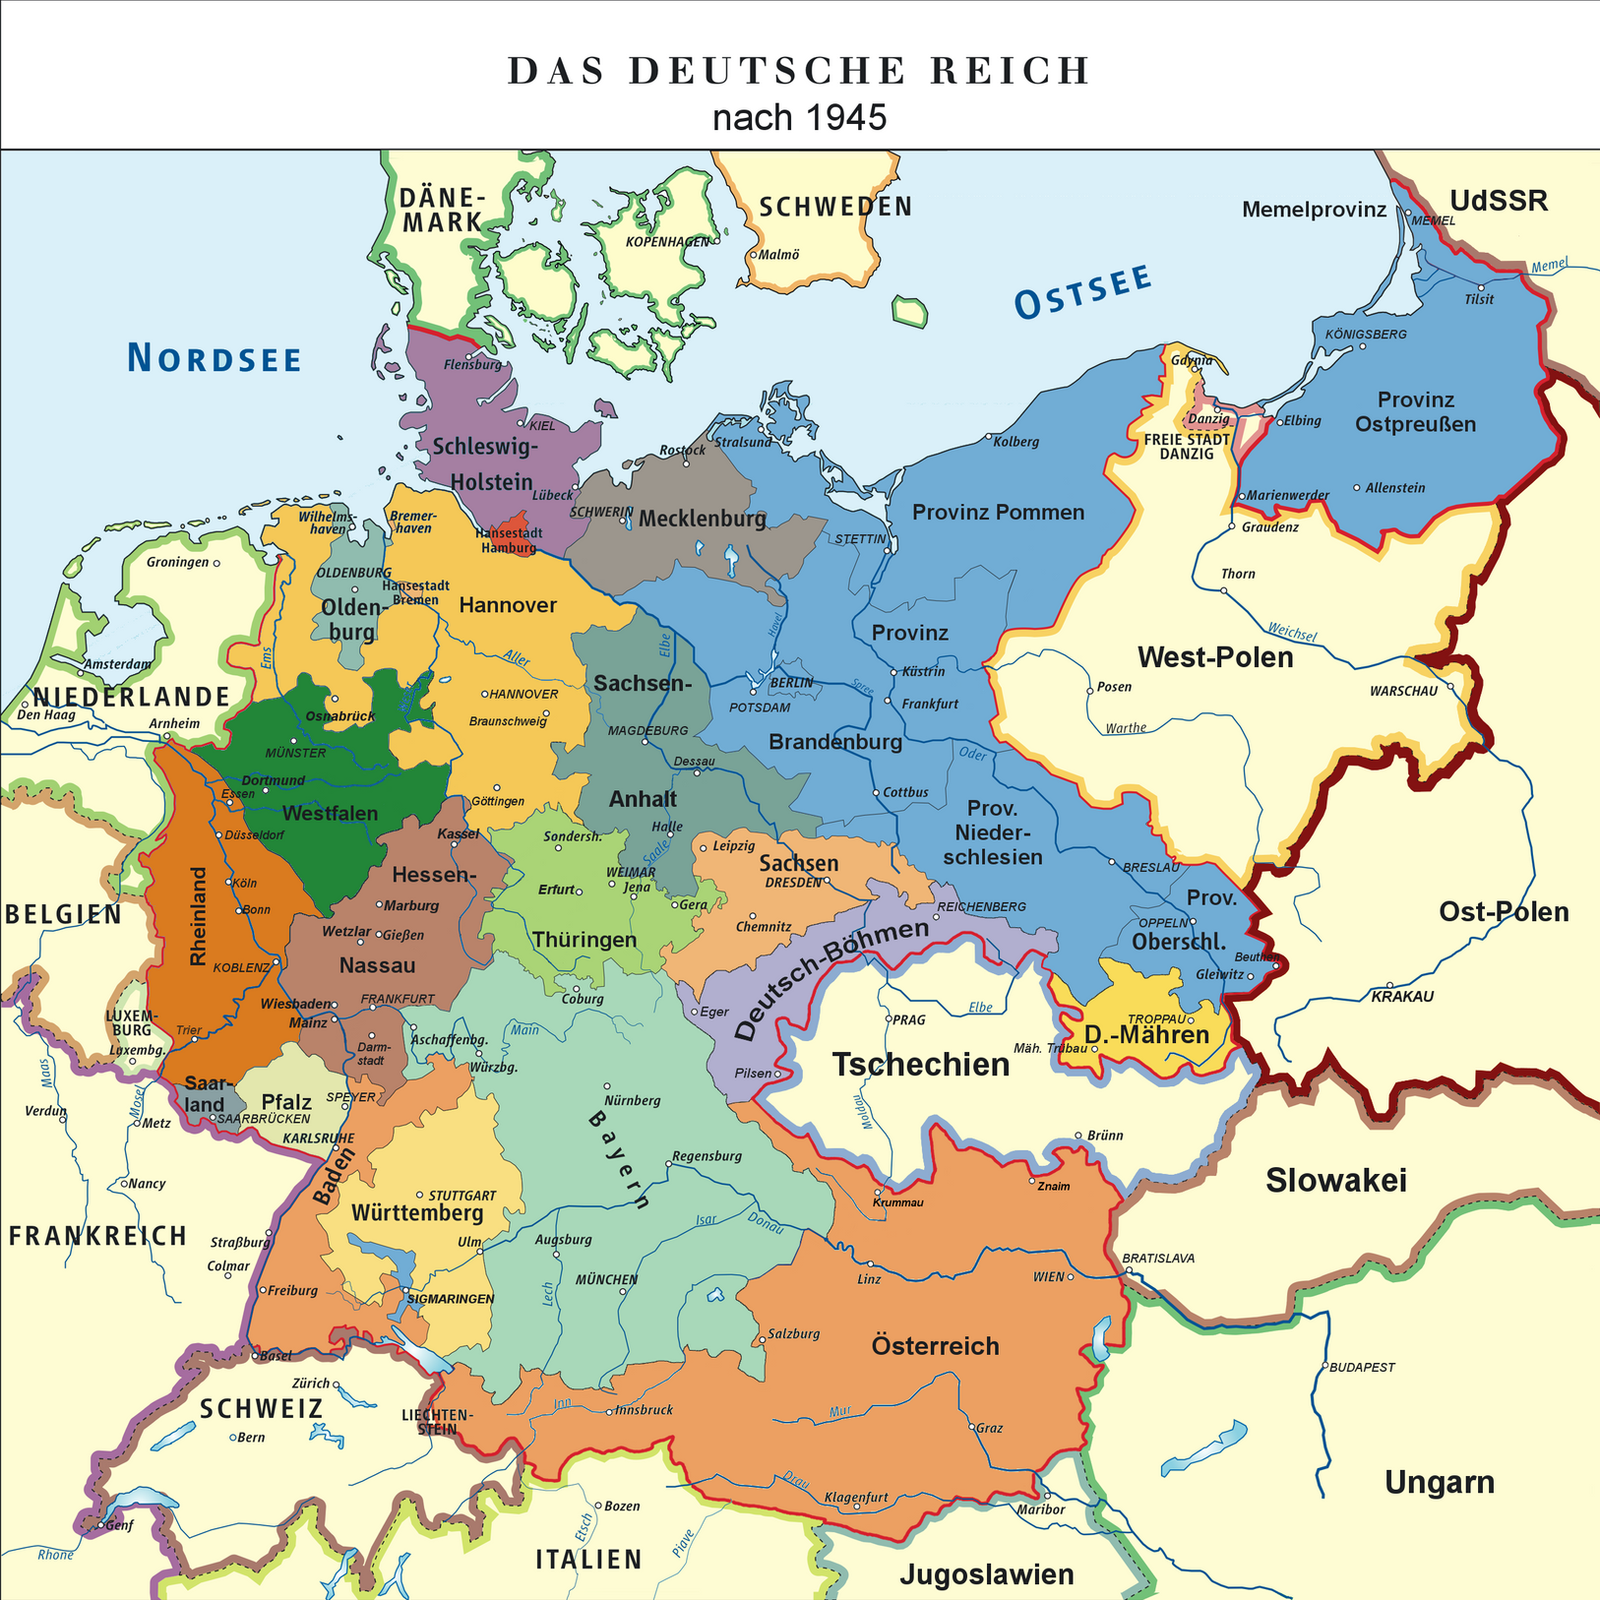 Map Of The German Empire By TiltschMaster On DeviantArt - Germany map timeline